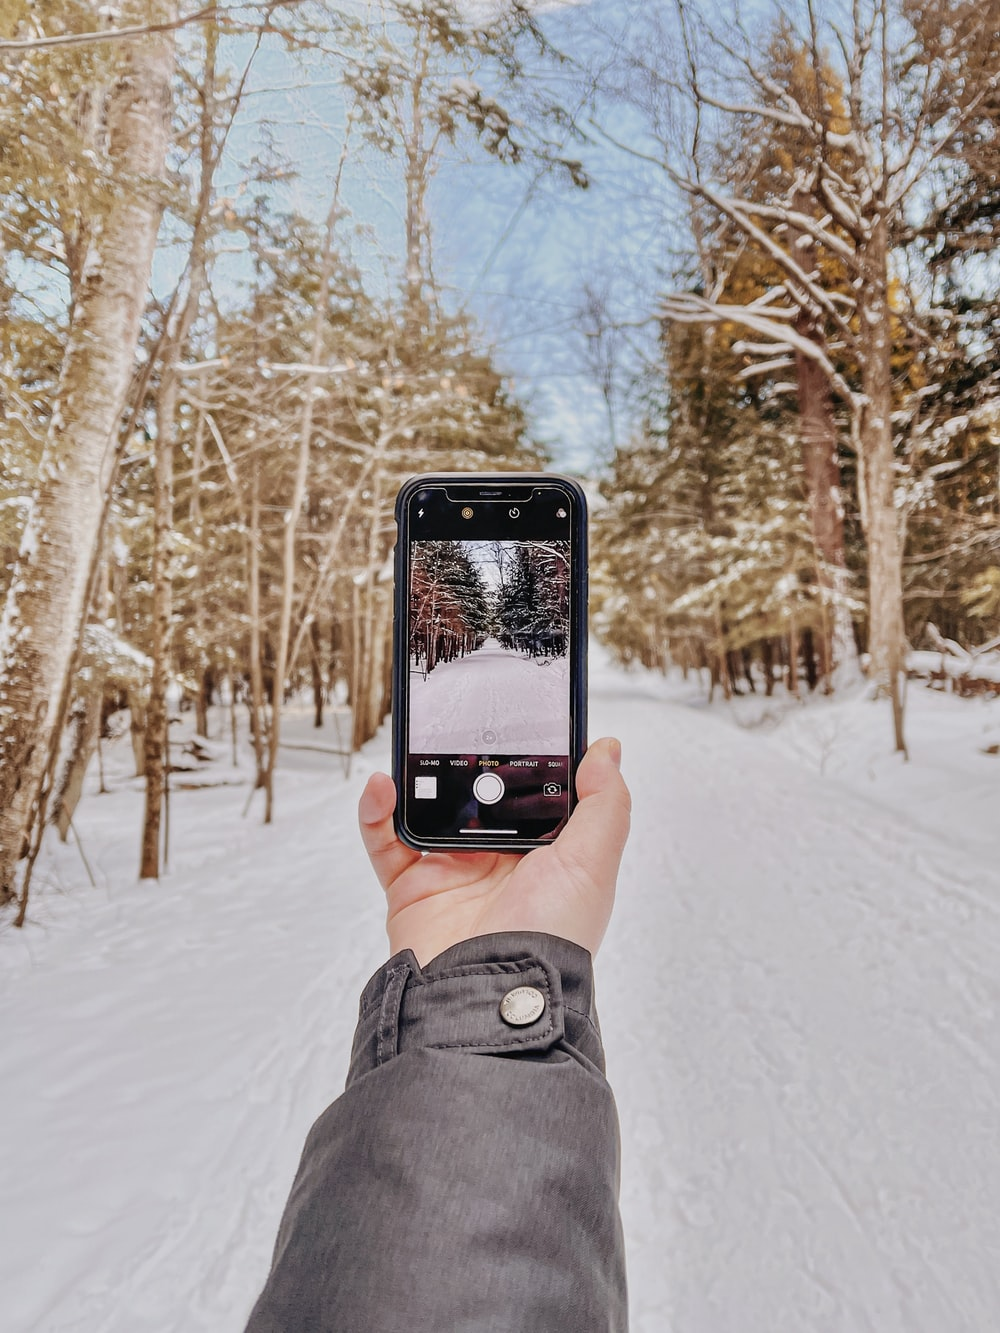 person holding black iphone 5 taking photo of snow covered ground